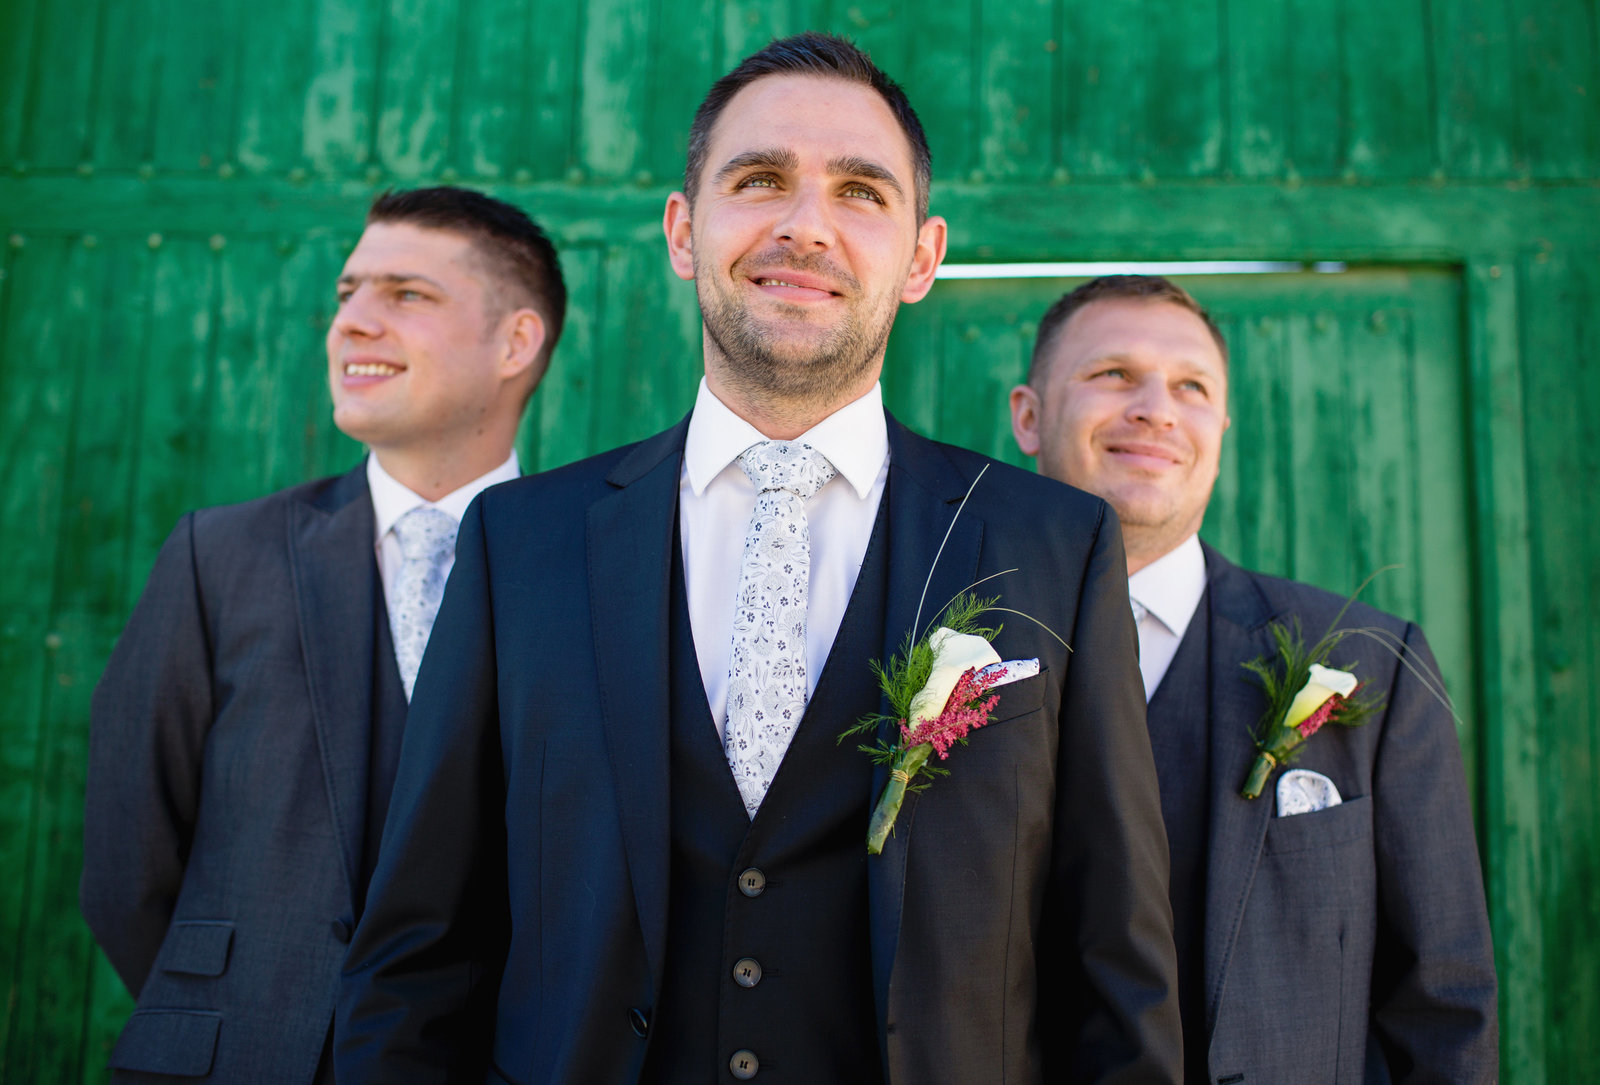 The Groom poses with his best man and usher behind him in front of a green wooden barn for a pre wedding photo taken by Motiejus wedding photographer while second shooting for Adorlee at this Spanish destination wedding.